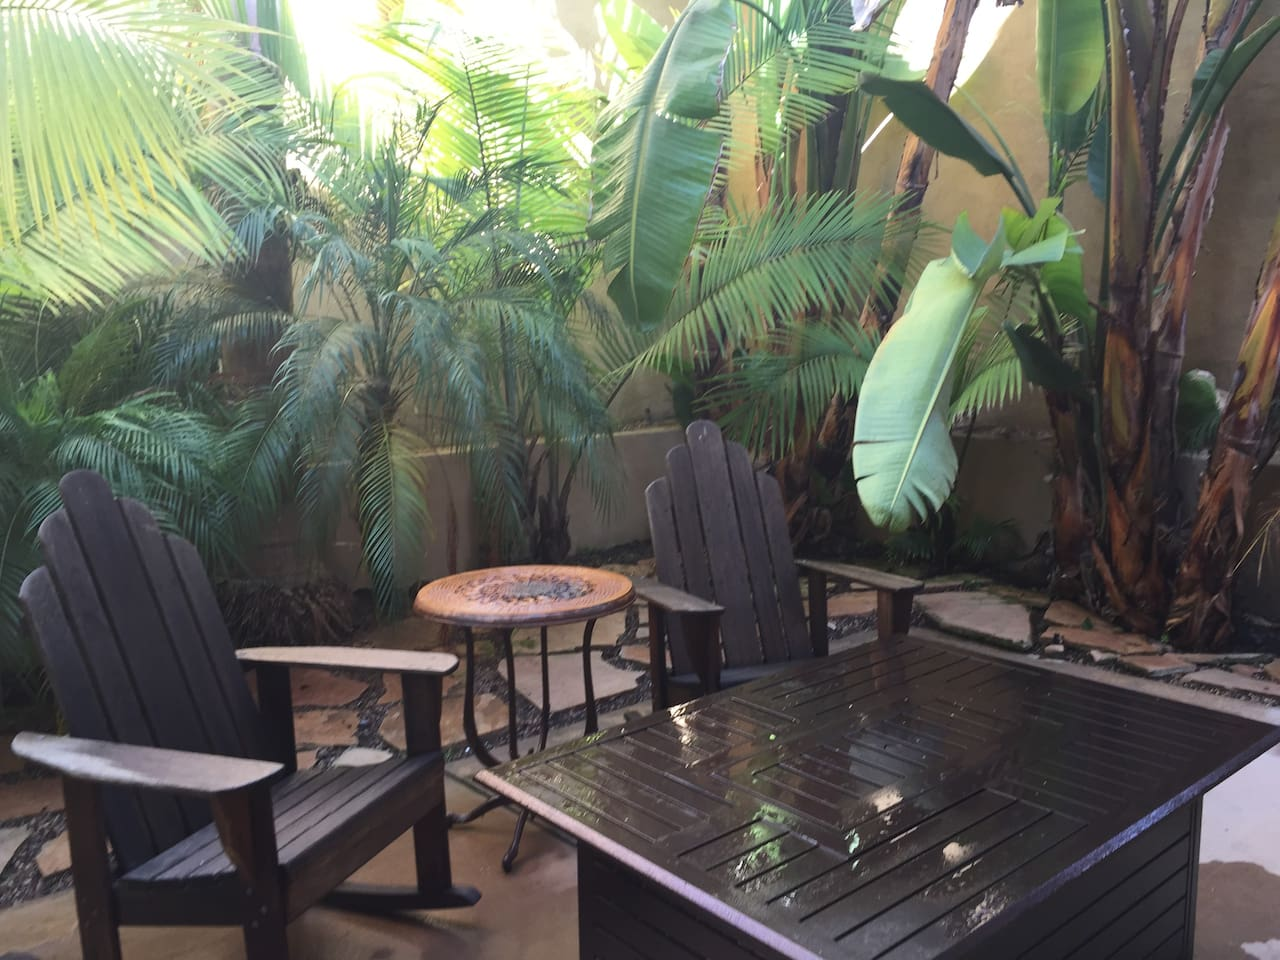 Enjoy relaxing in the tropical patio.